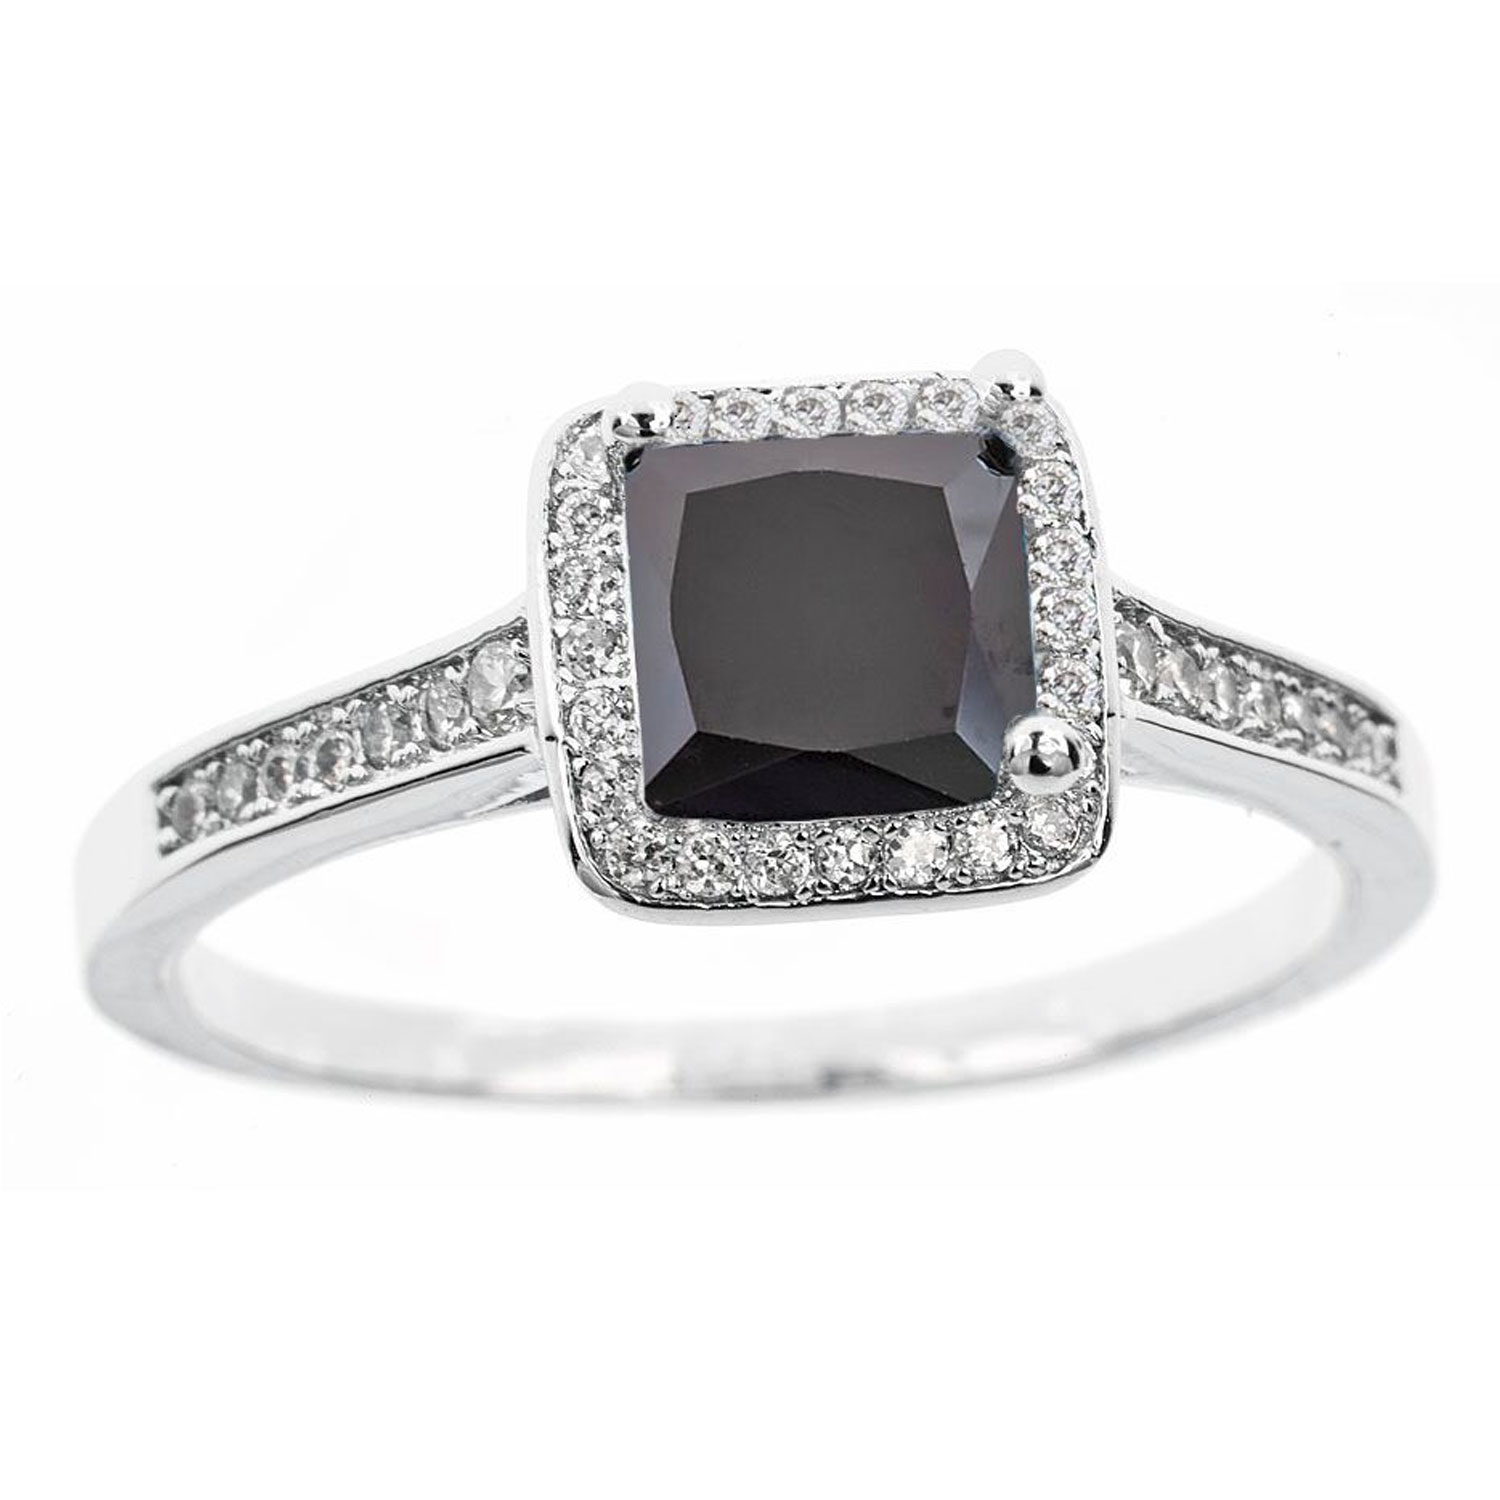 18k White Gold Plated 2.00 CTTW Princess Cut Halo Ring